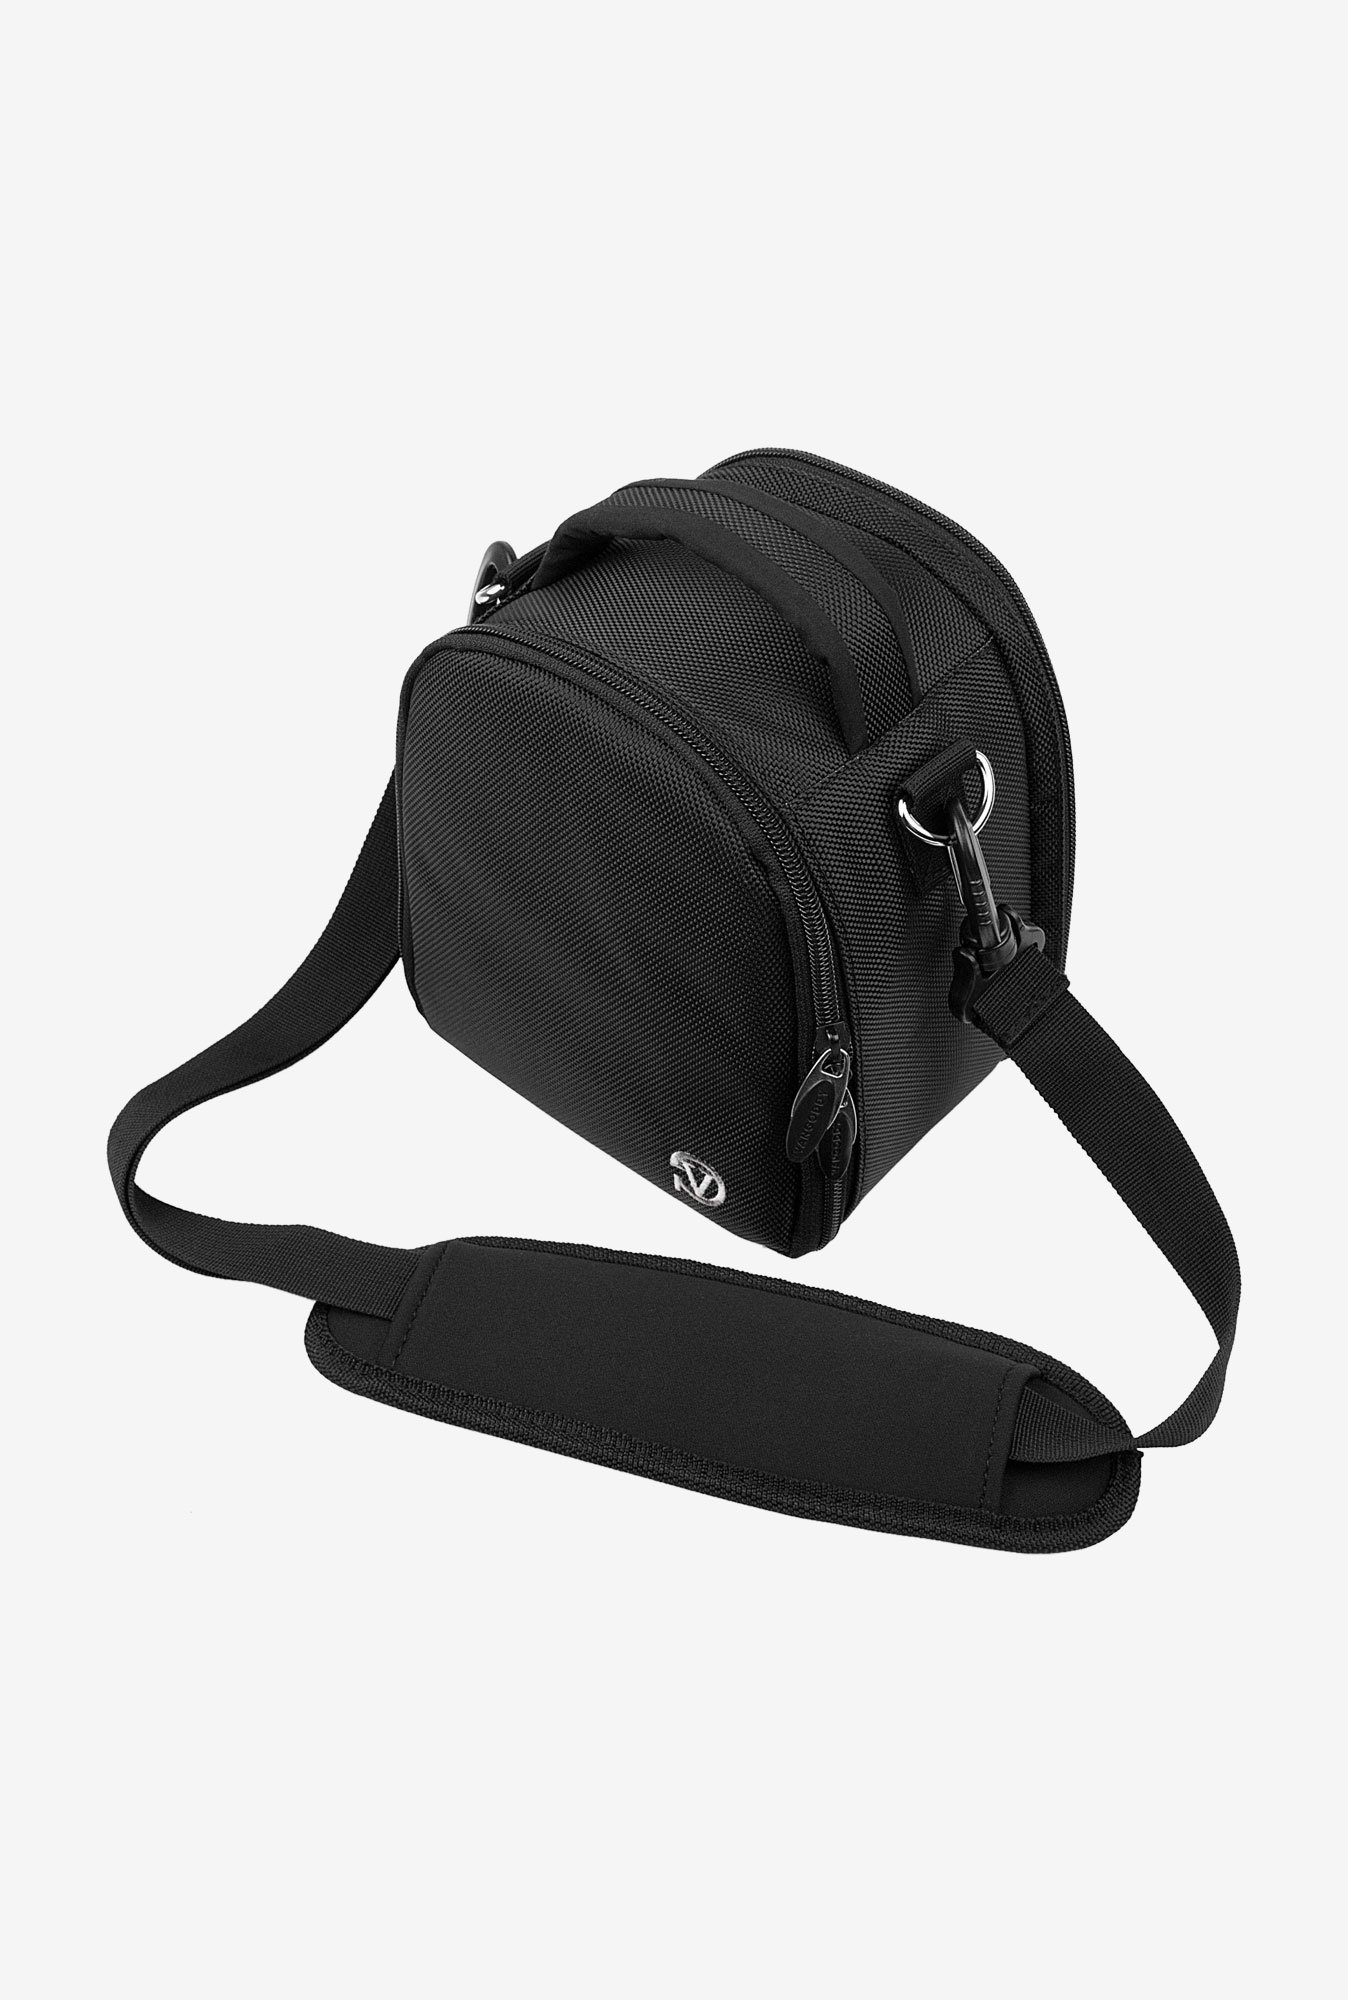 Vangoddy VGBLL-46966 Camera Carrying Bag Black